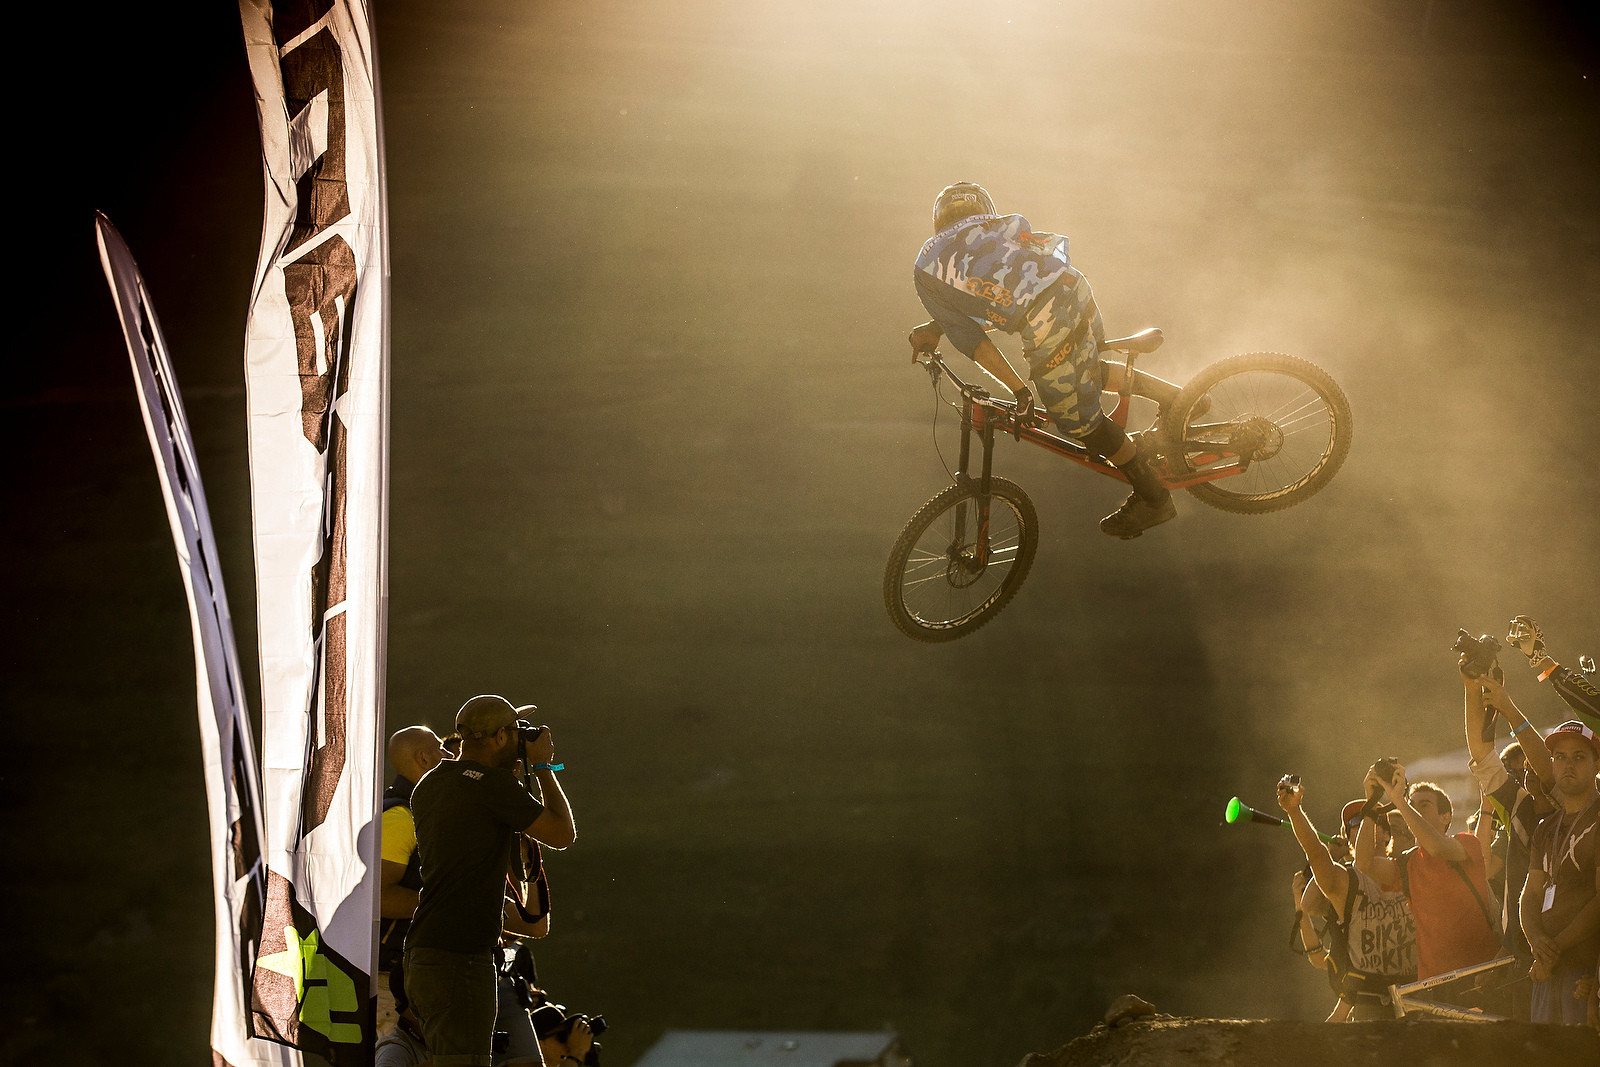 Dave McMillan, Whip Off European Champs, Crankworx L2A - Whip Off European Champs, Crankworx L2A - Mountain Biking Pictures - Vital MTB